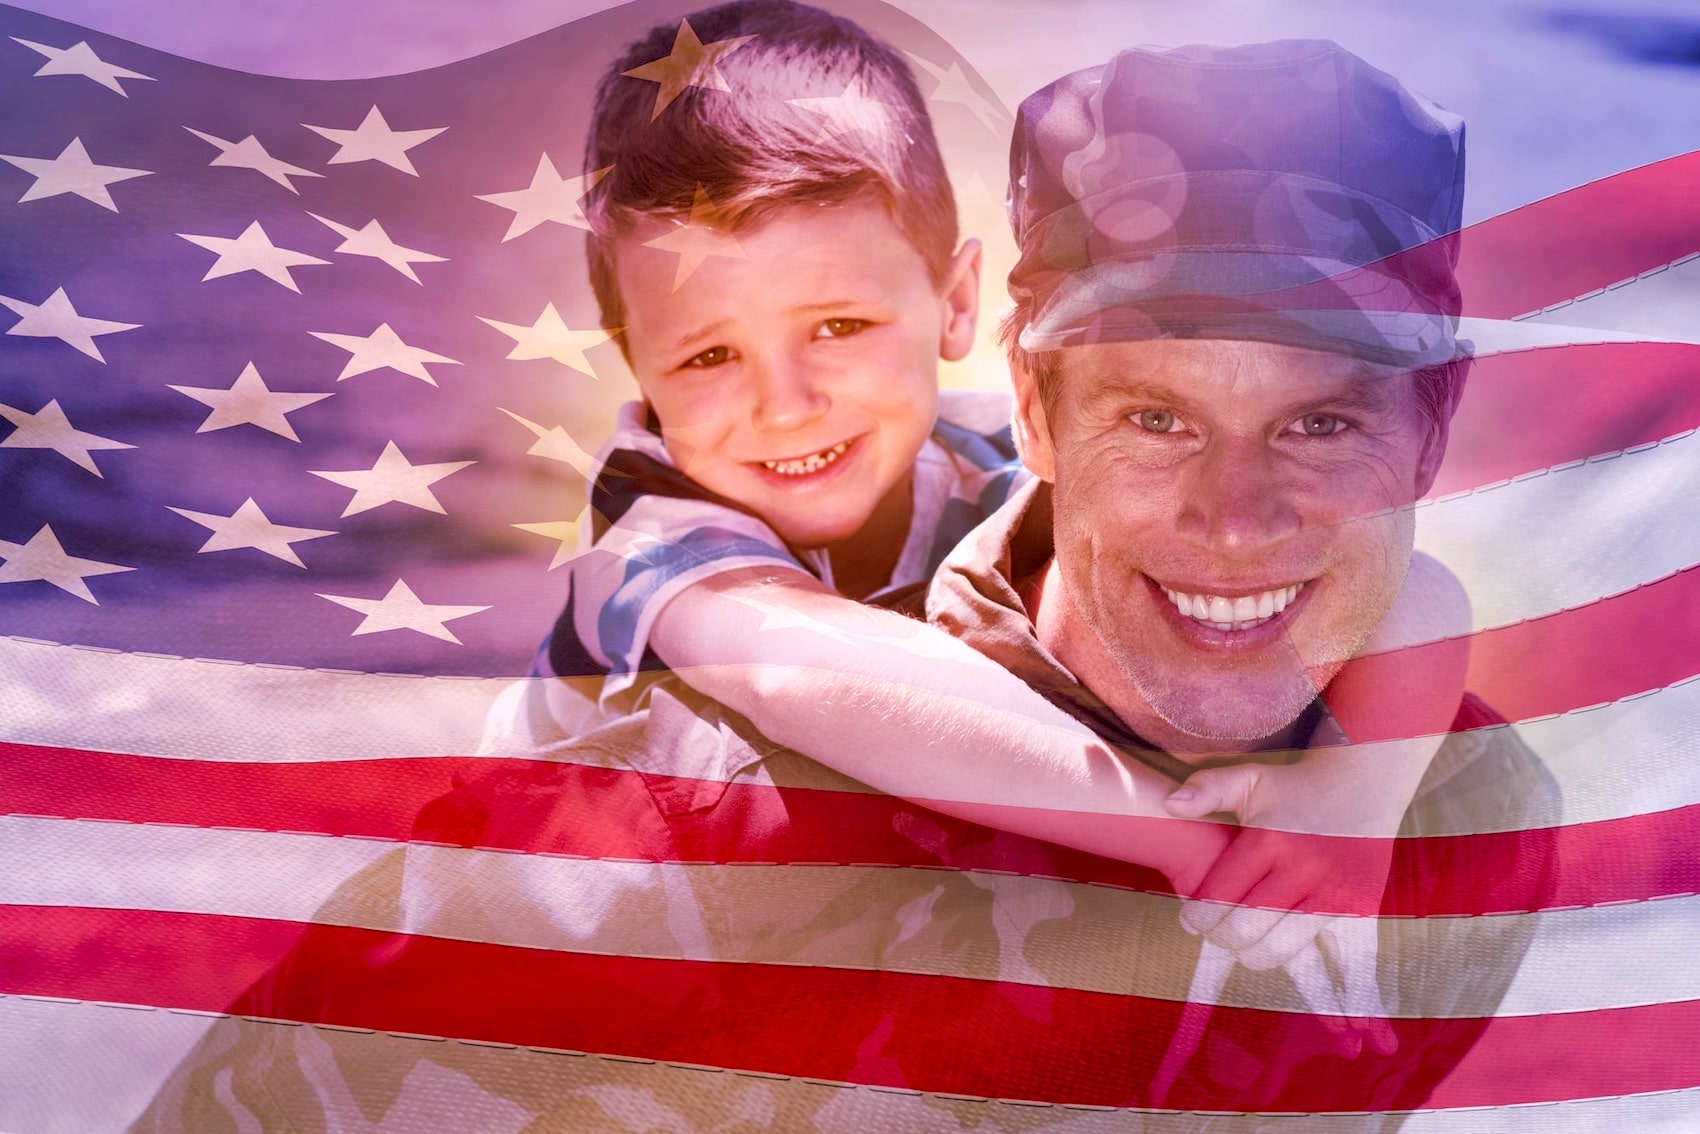 US Soldier carrying his son on his back with an American Flag in the background.